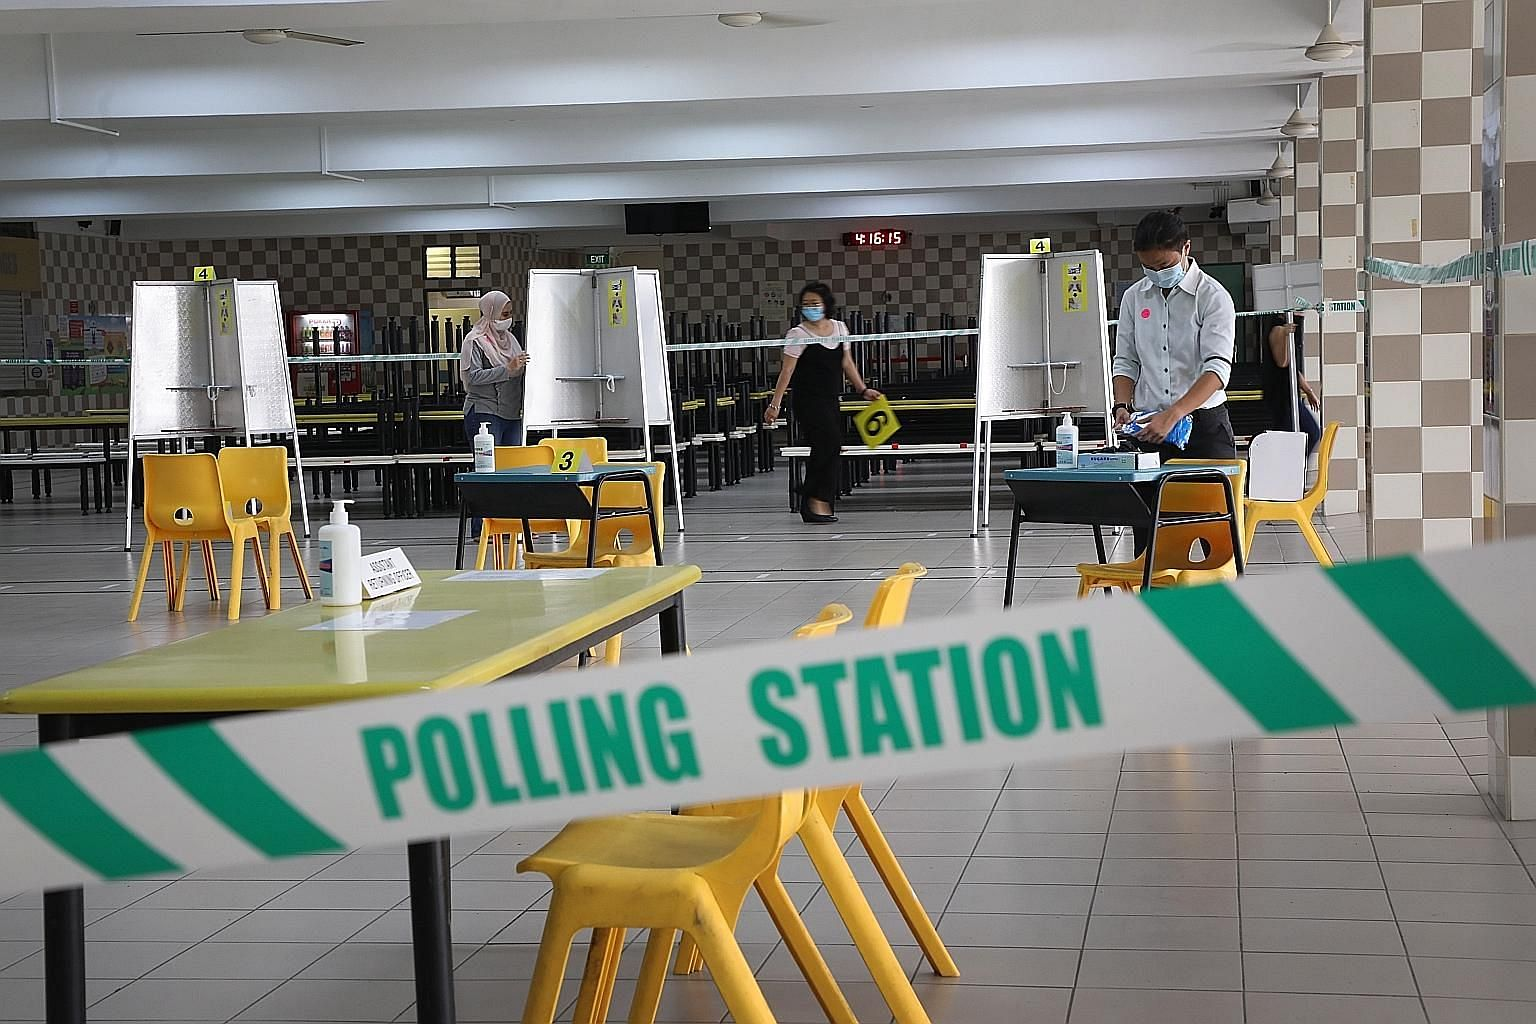 At Chung Cheng High School in Goodman Road yesterday, public servants set up the polling station, putting in place safe-distanced polling booths, temperaturetaking points, sanitising products and floor markings for spaced queues to ensure the safety